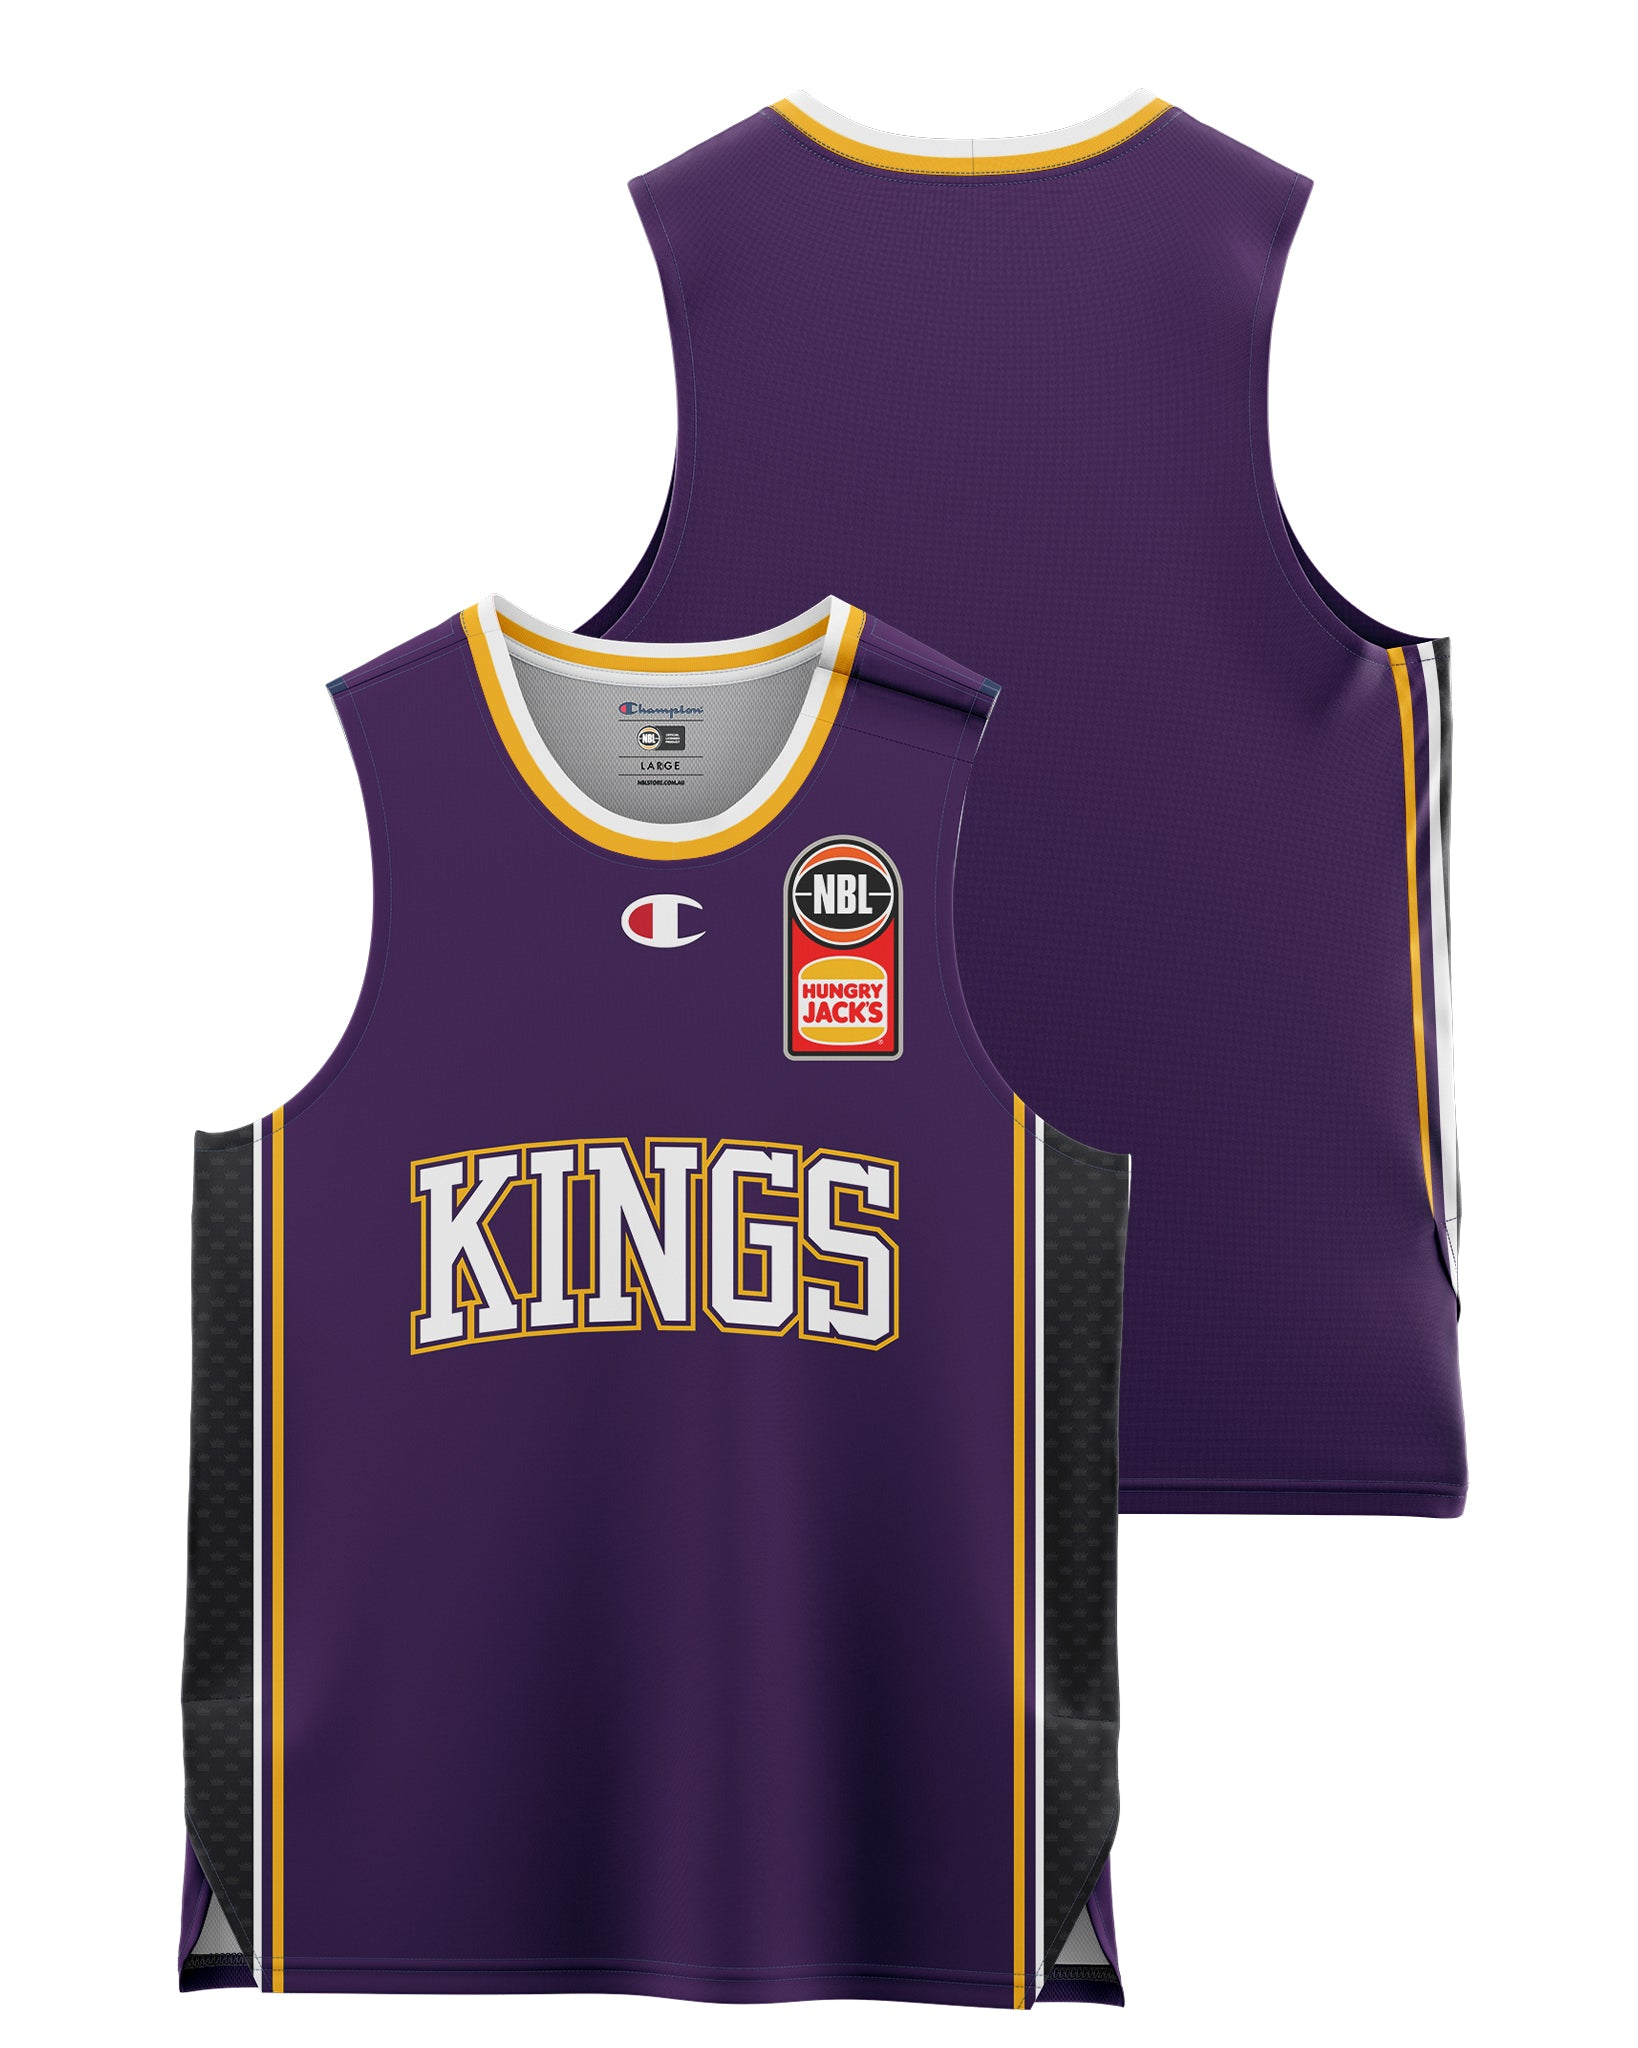 Sydney Kings 20/21 Infant Authentic Home Jersey